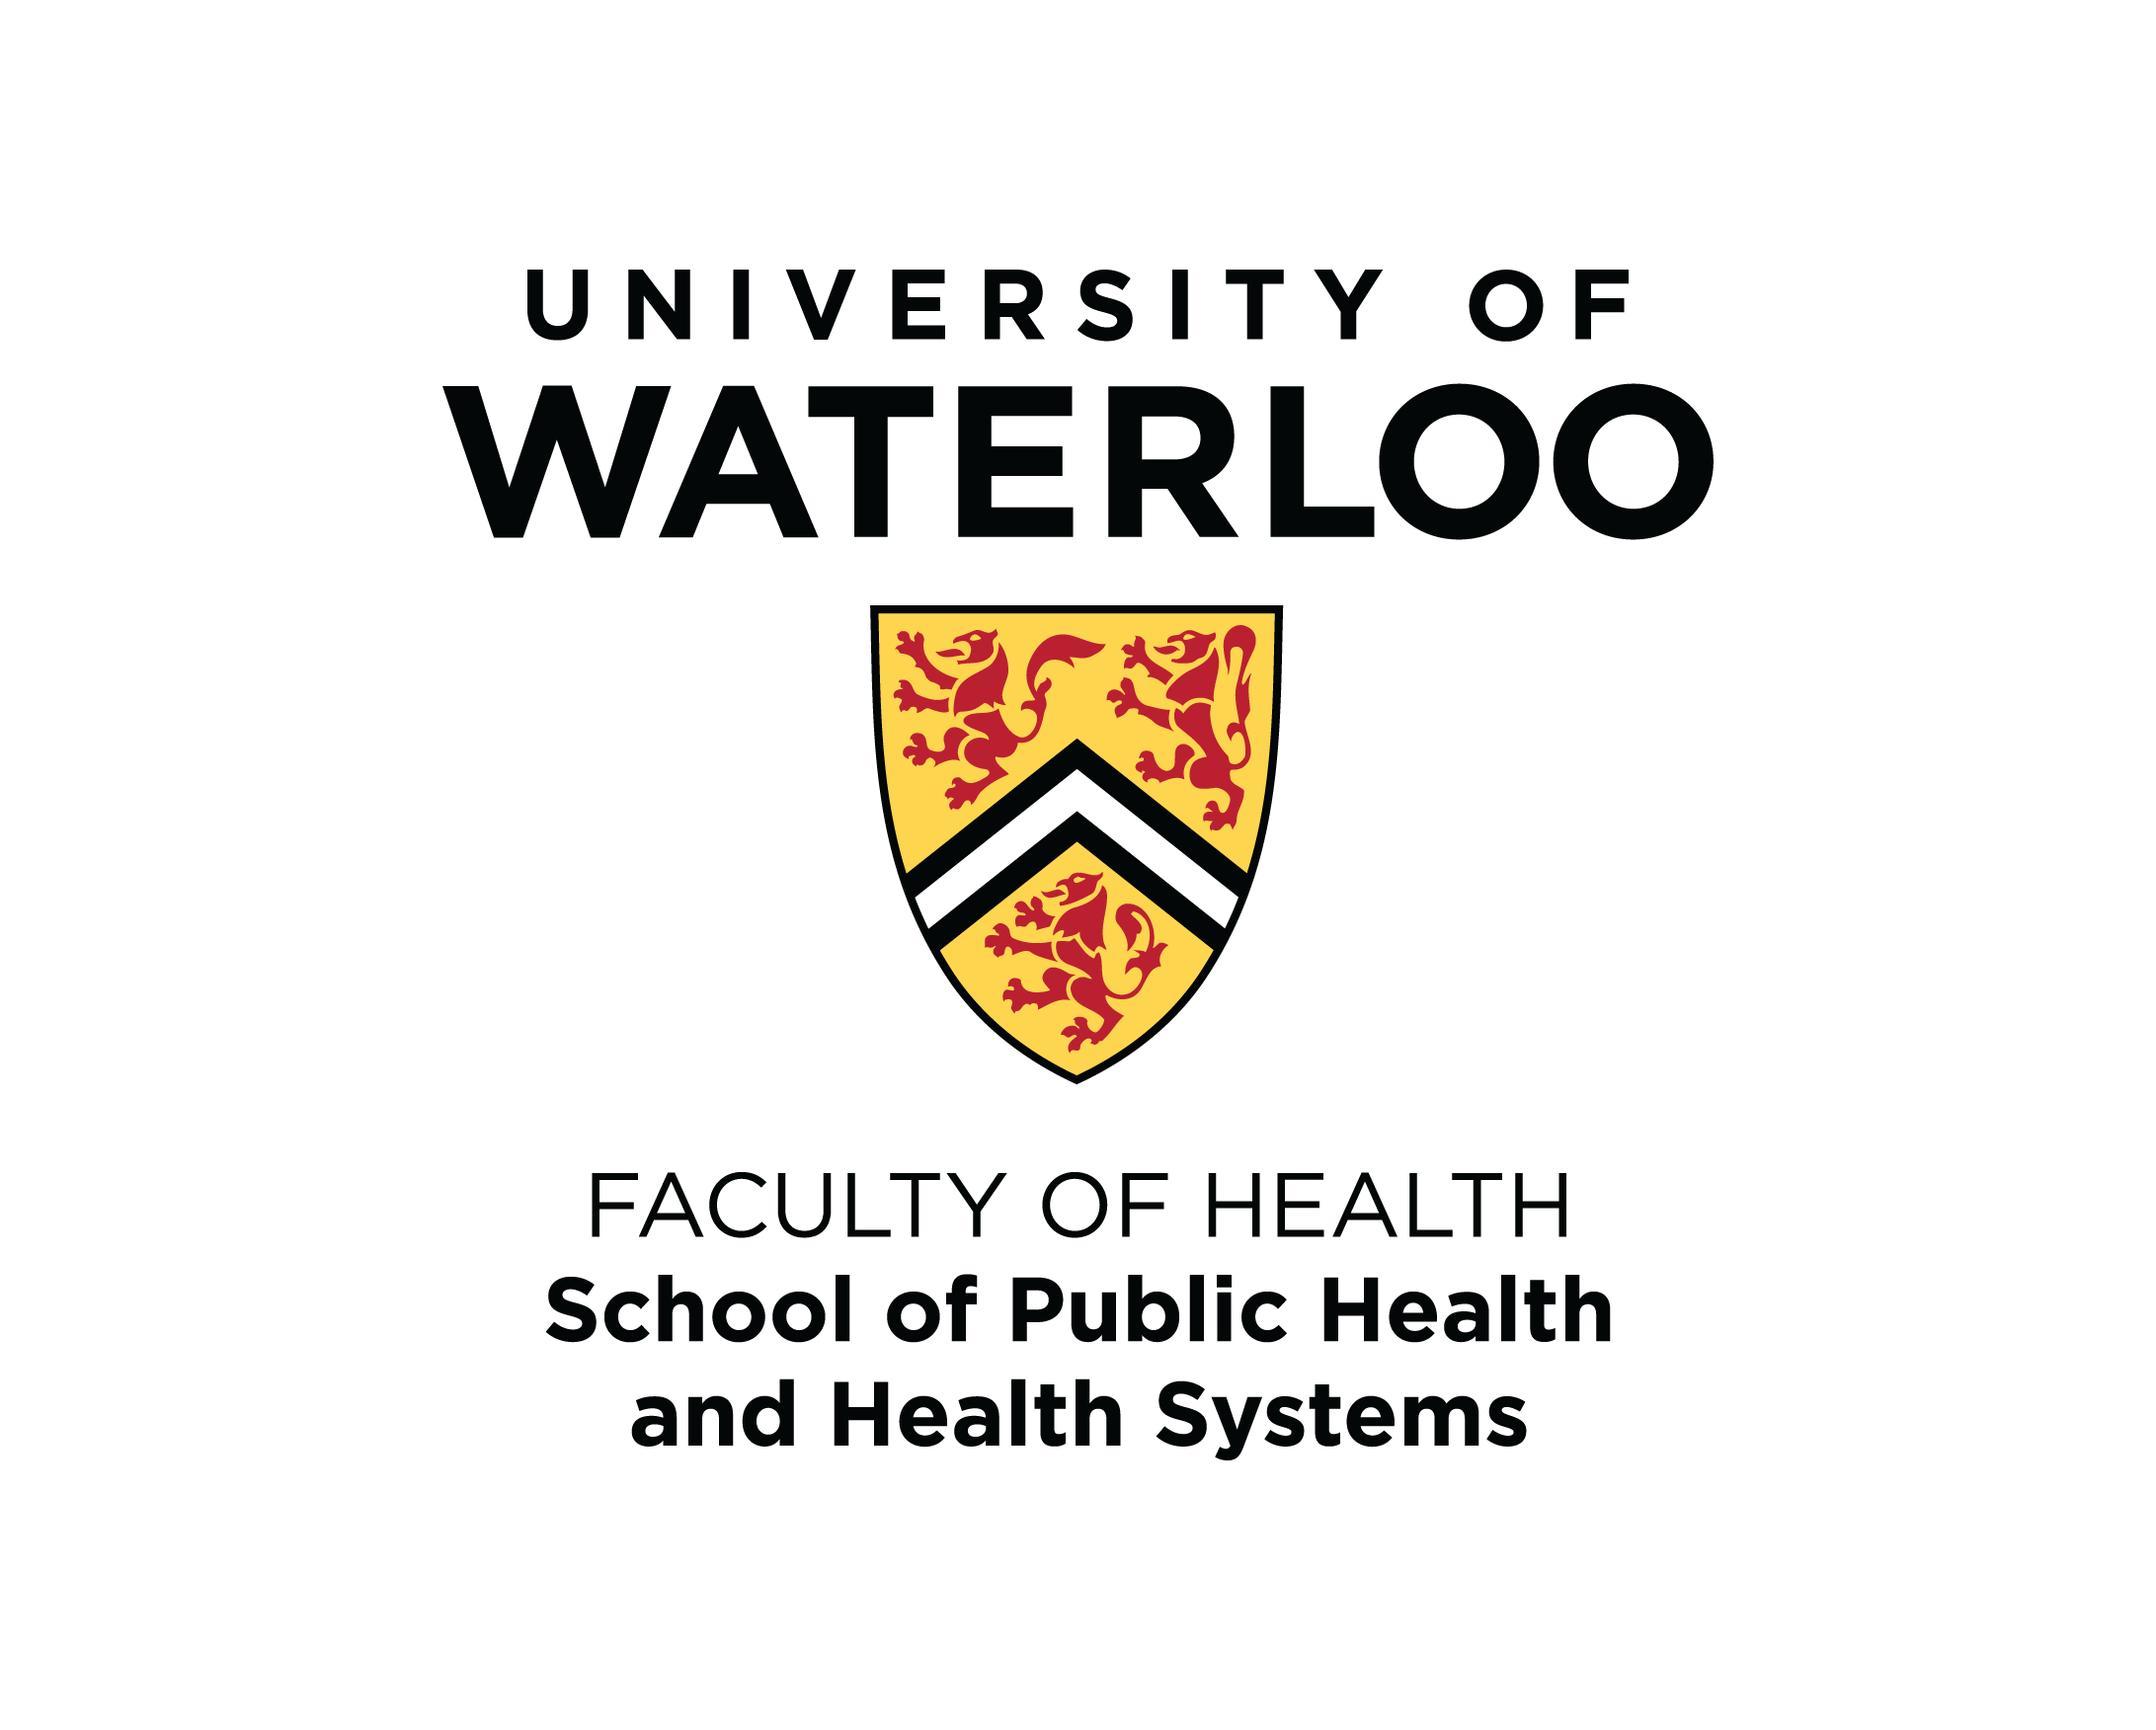 University of Waterloo School of Public Health and Health Systems logo.